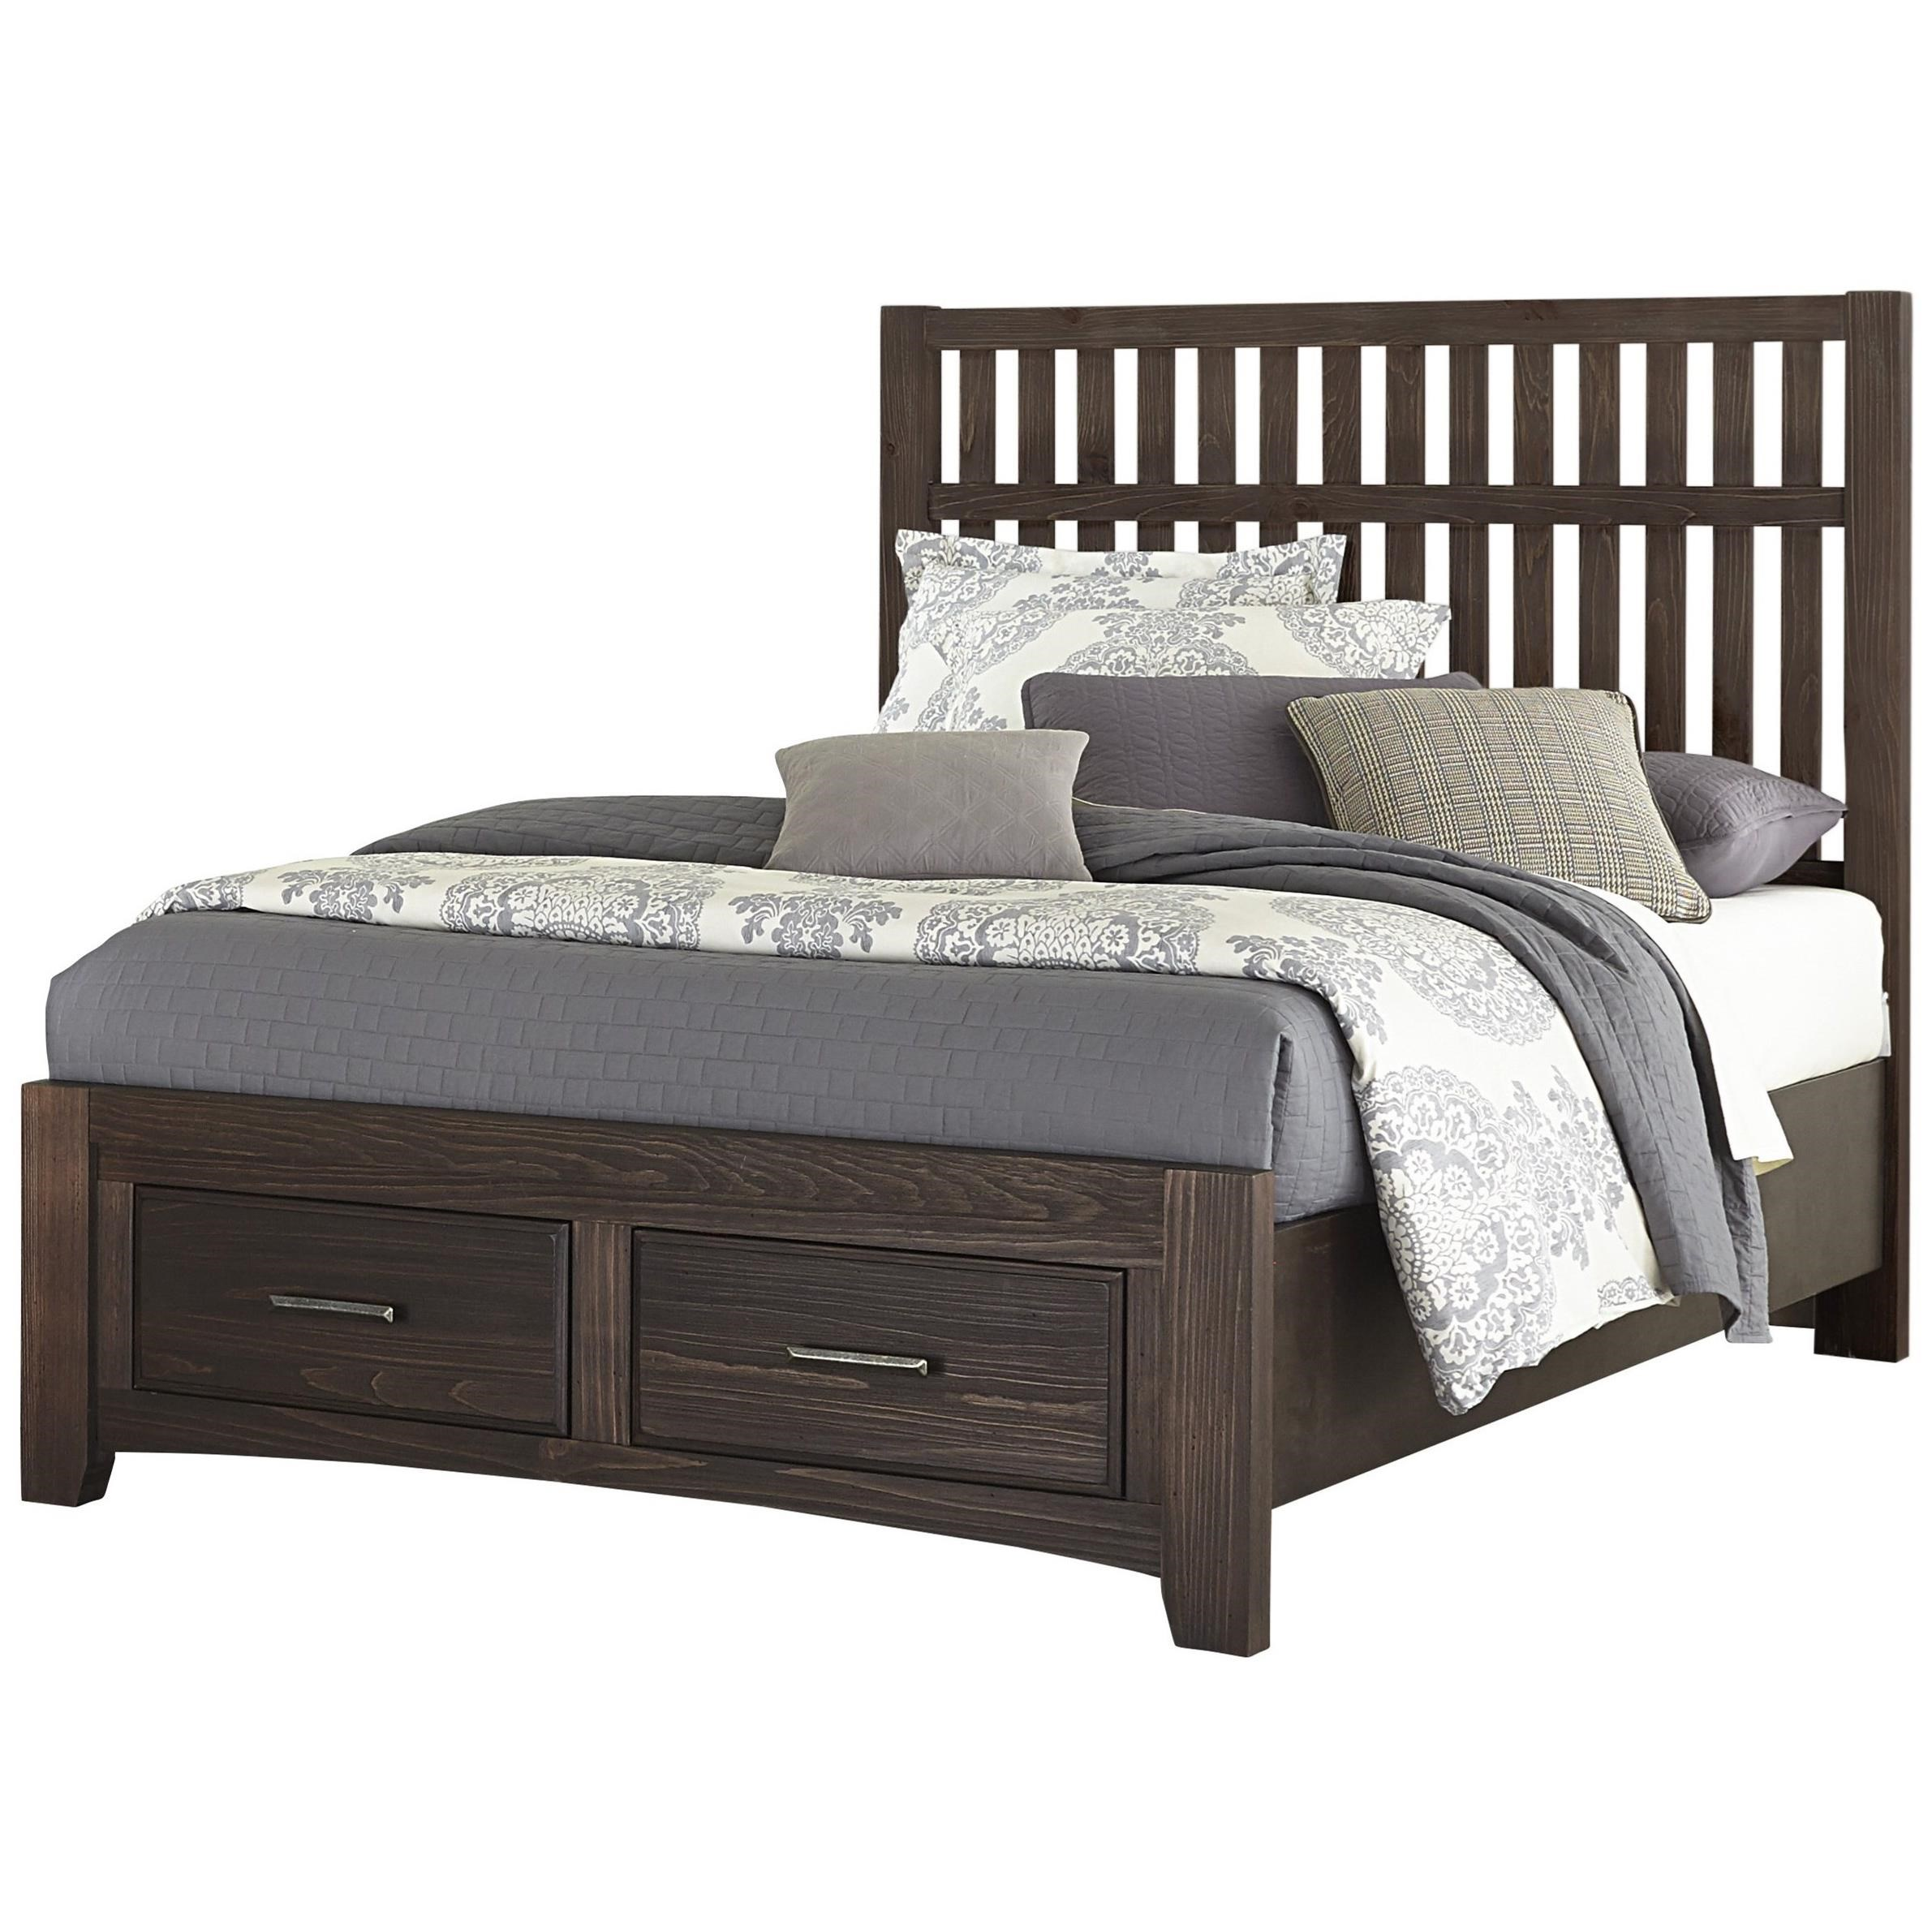 Cottage Too Queen Storage Bed  by Vaughan Bassett at Lapeer Furniture & Mattress Center